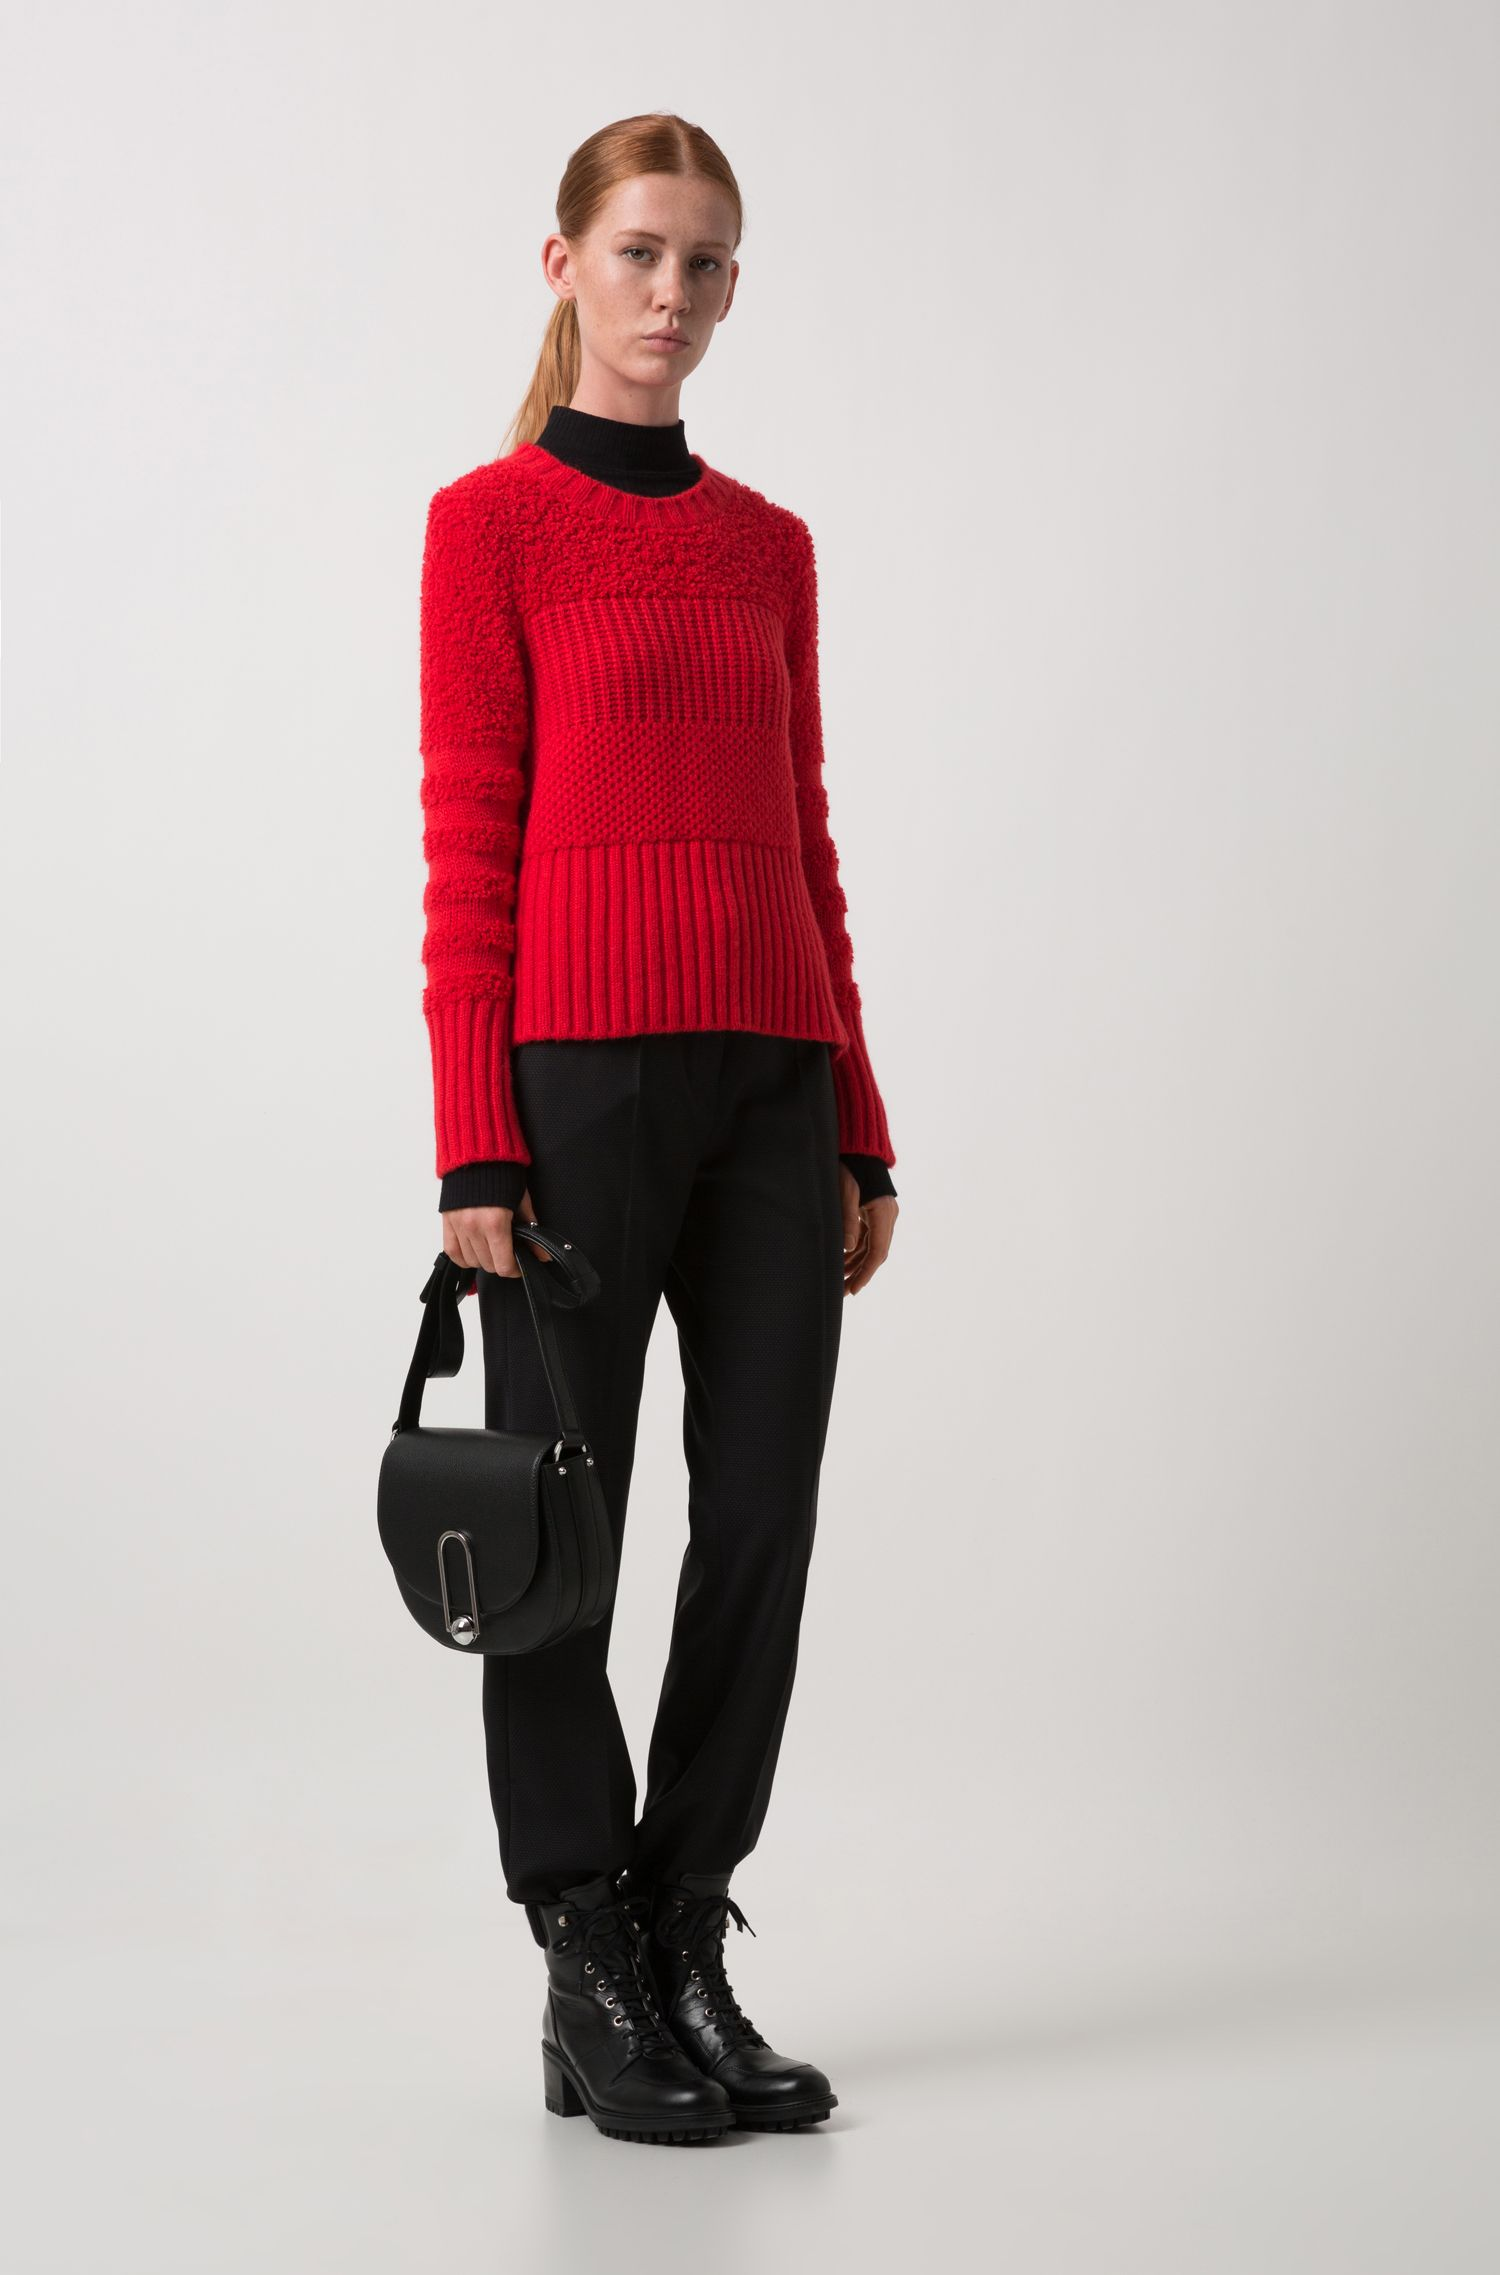 Crew-neck sweater in mixed knitted textures, Red